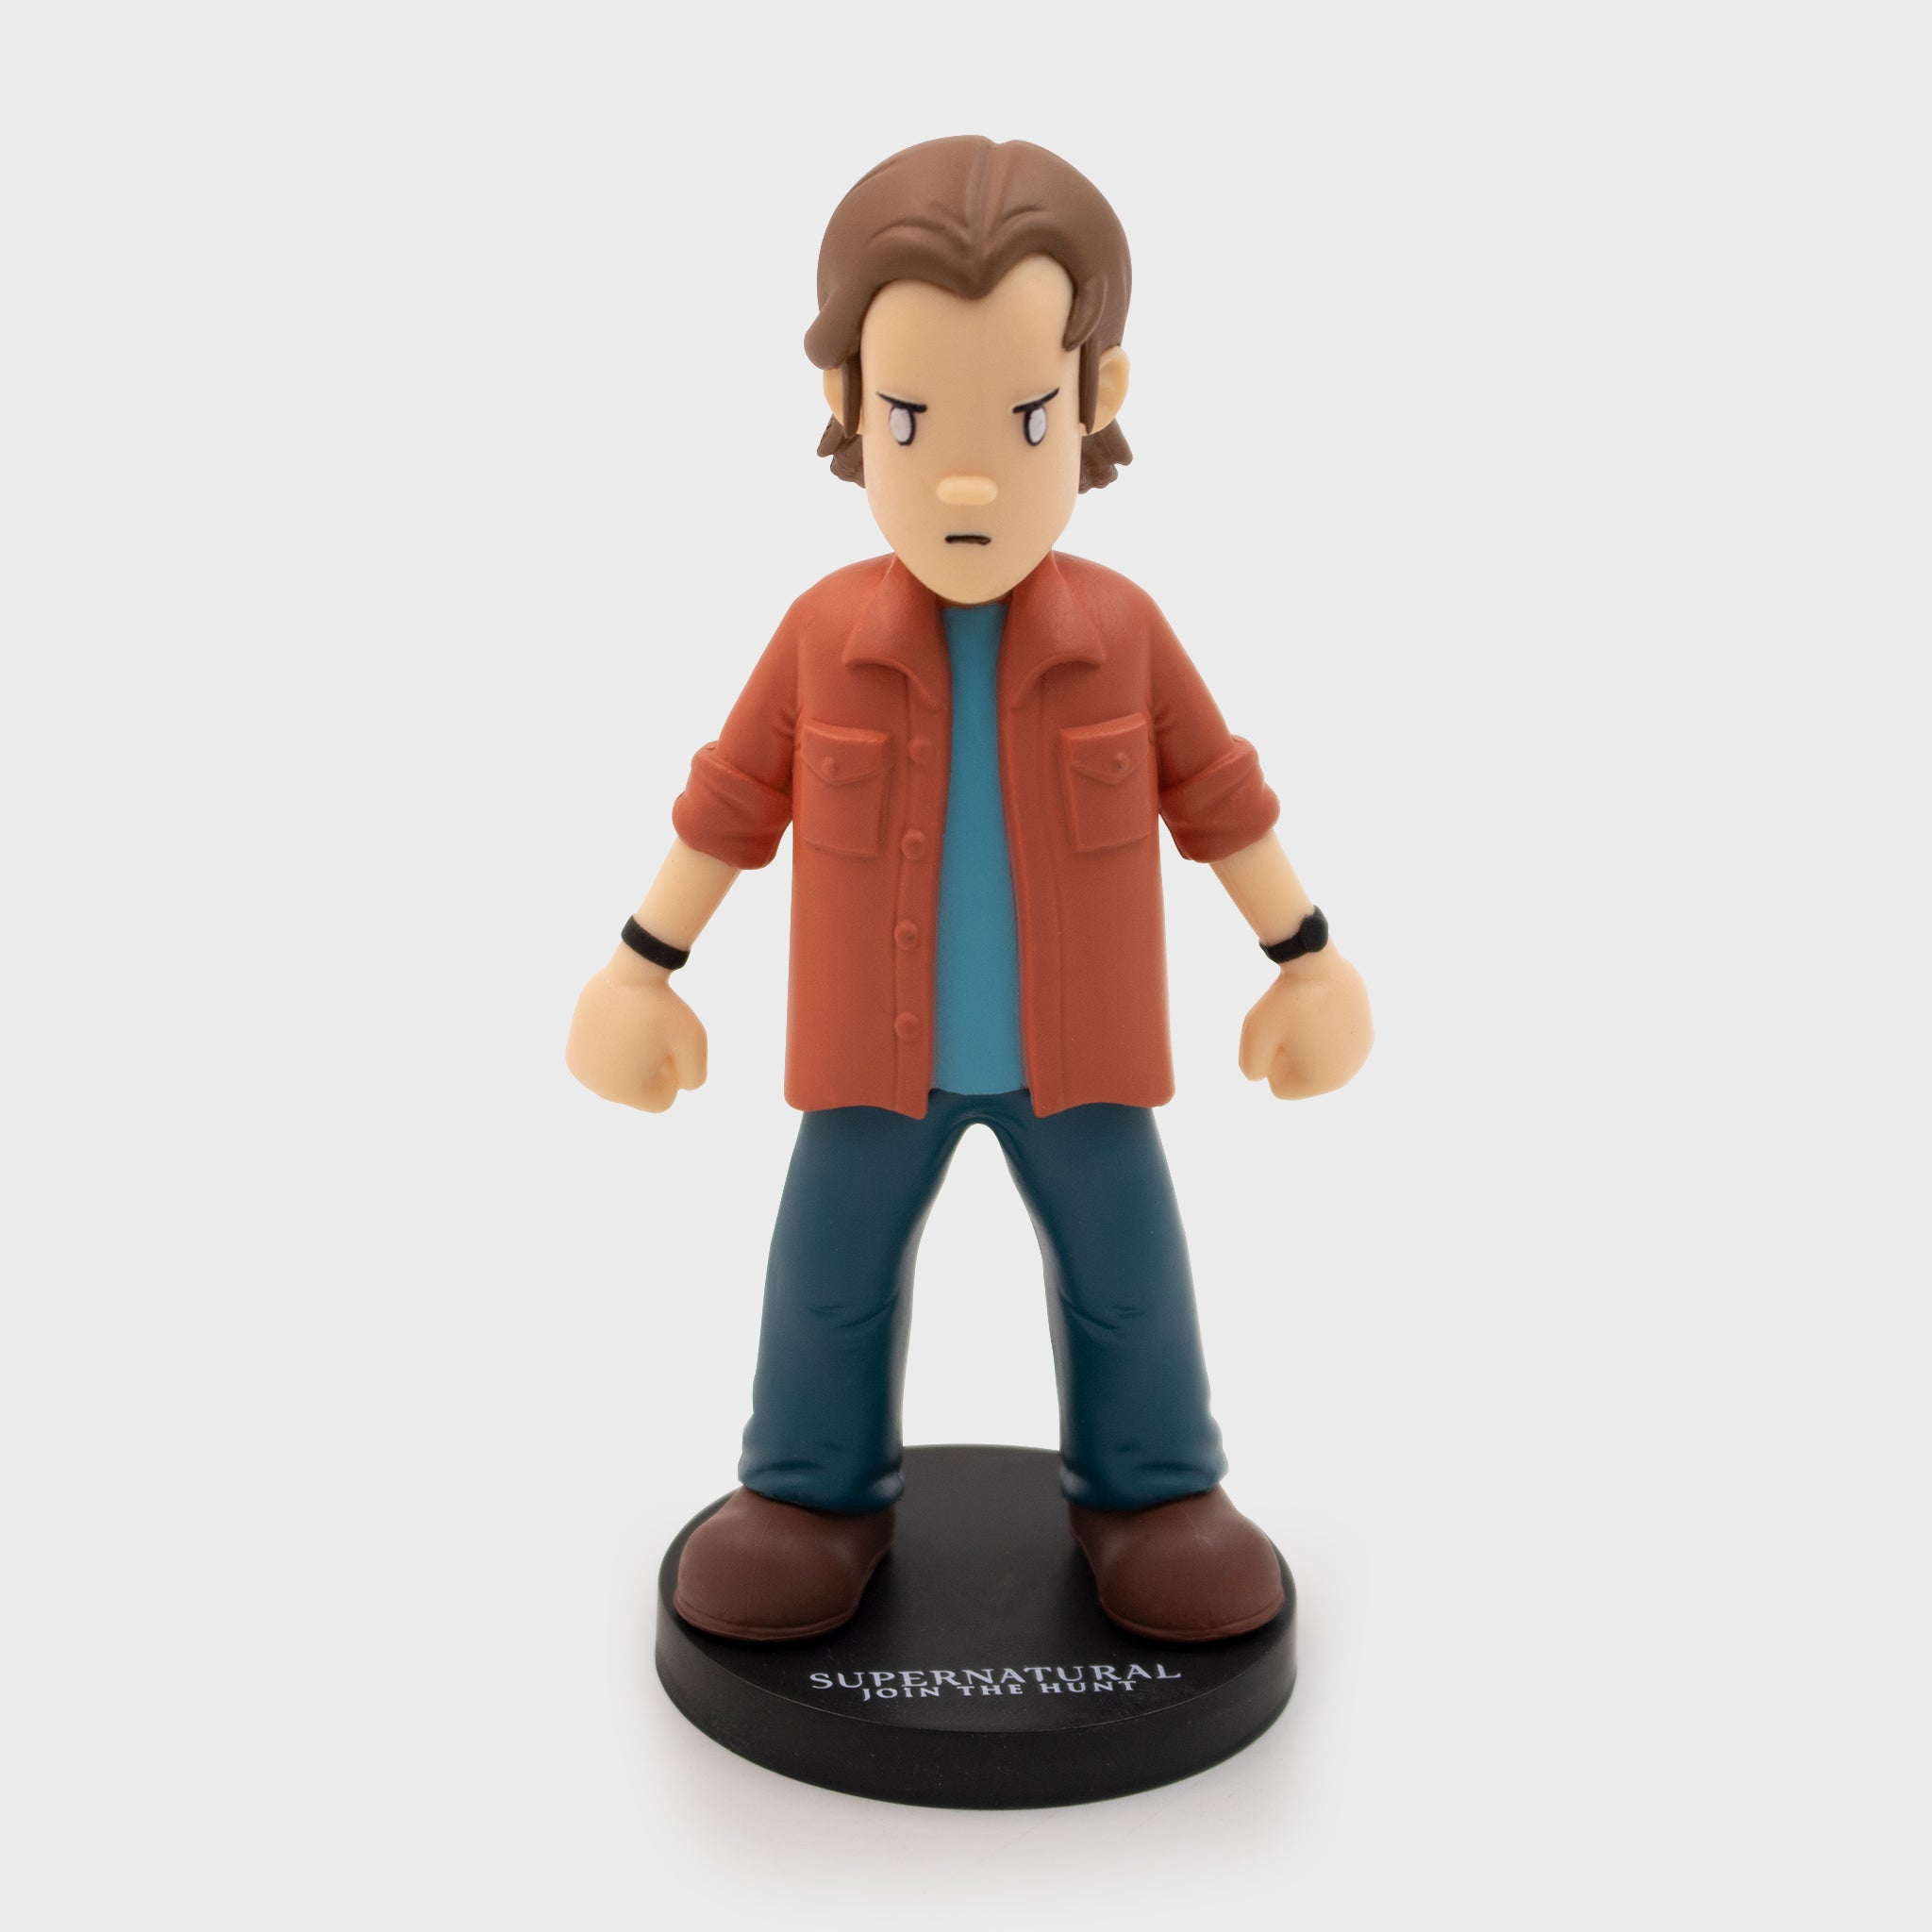 supernatural box sam winchester vinyl figure collectible exclusive fans spn spnfamily